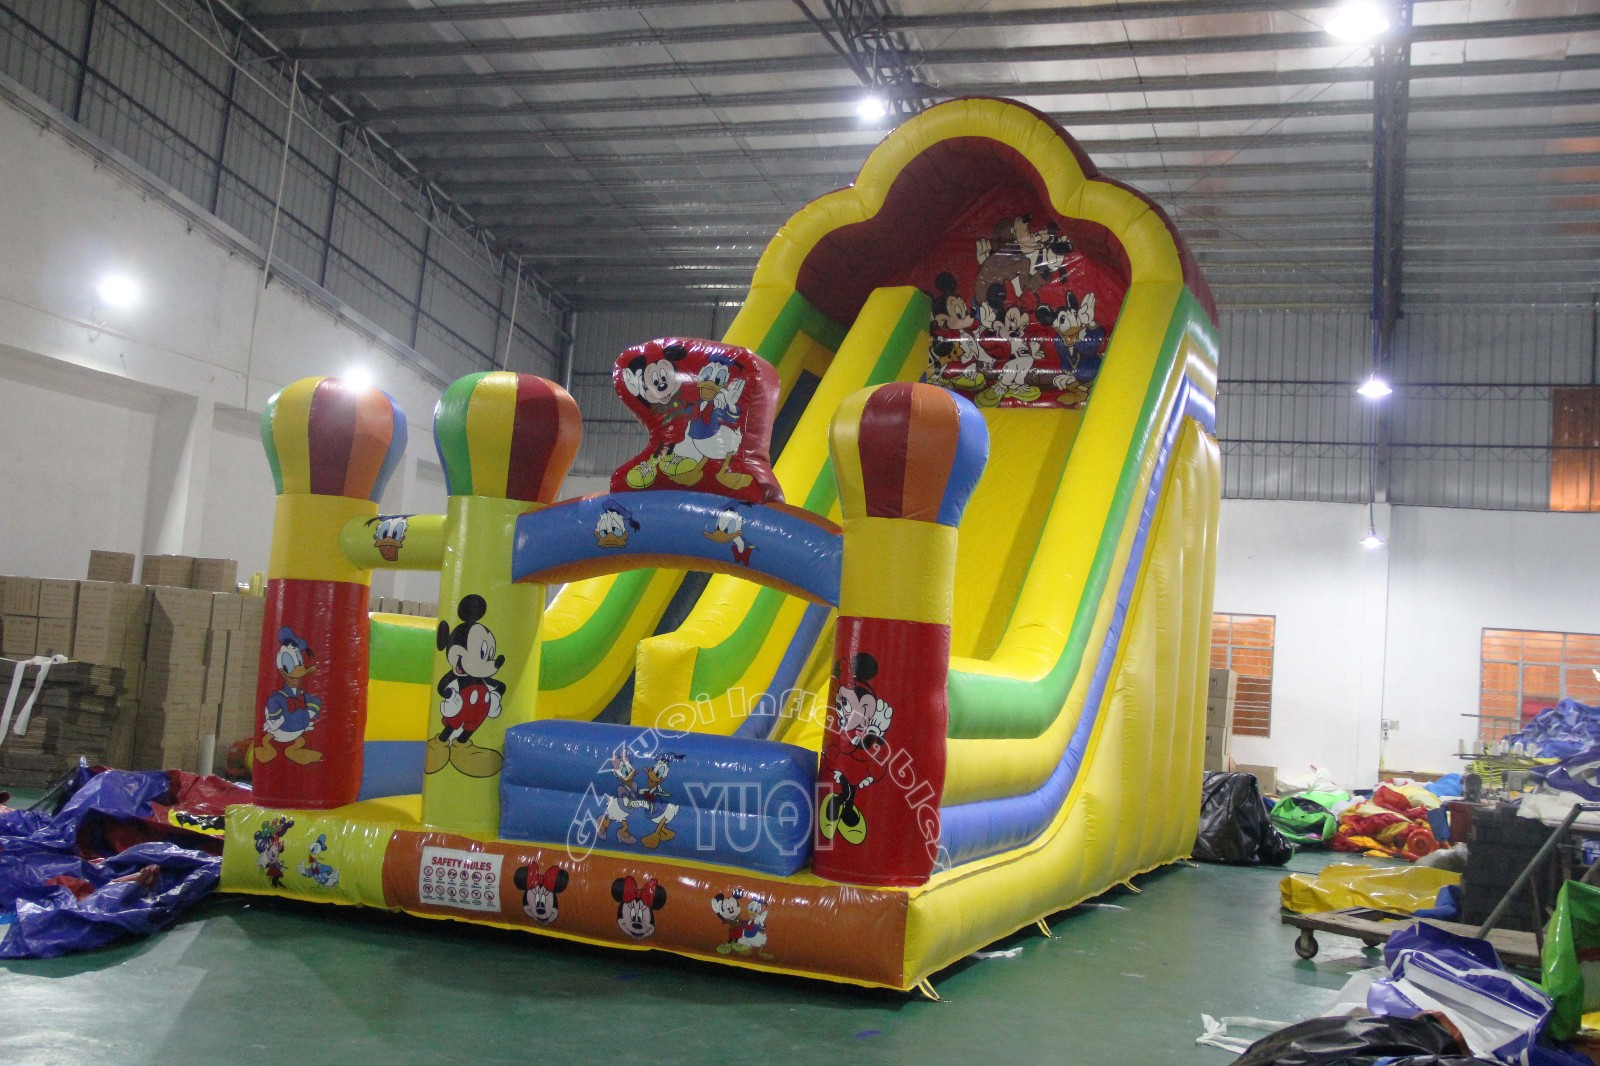 YUQI-Yq349 Material Giant Inflatable Slide Micky Mouse Commercial